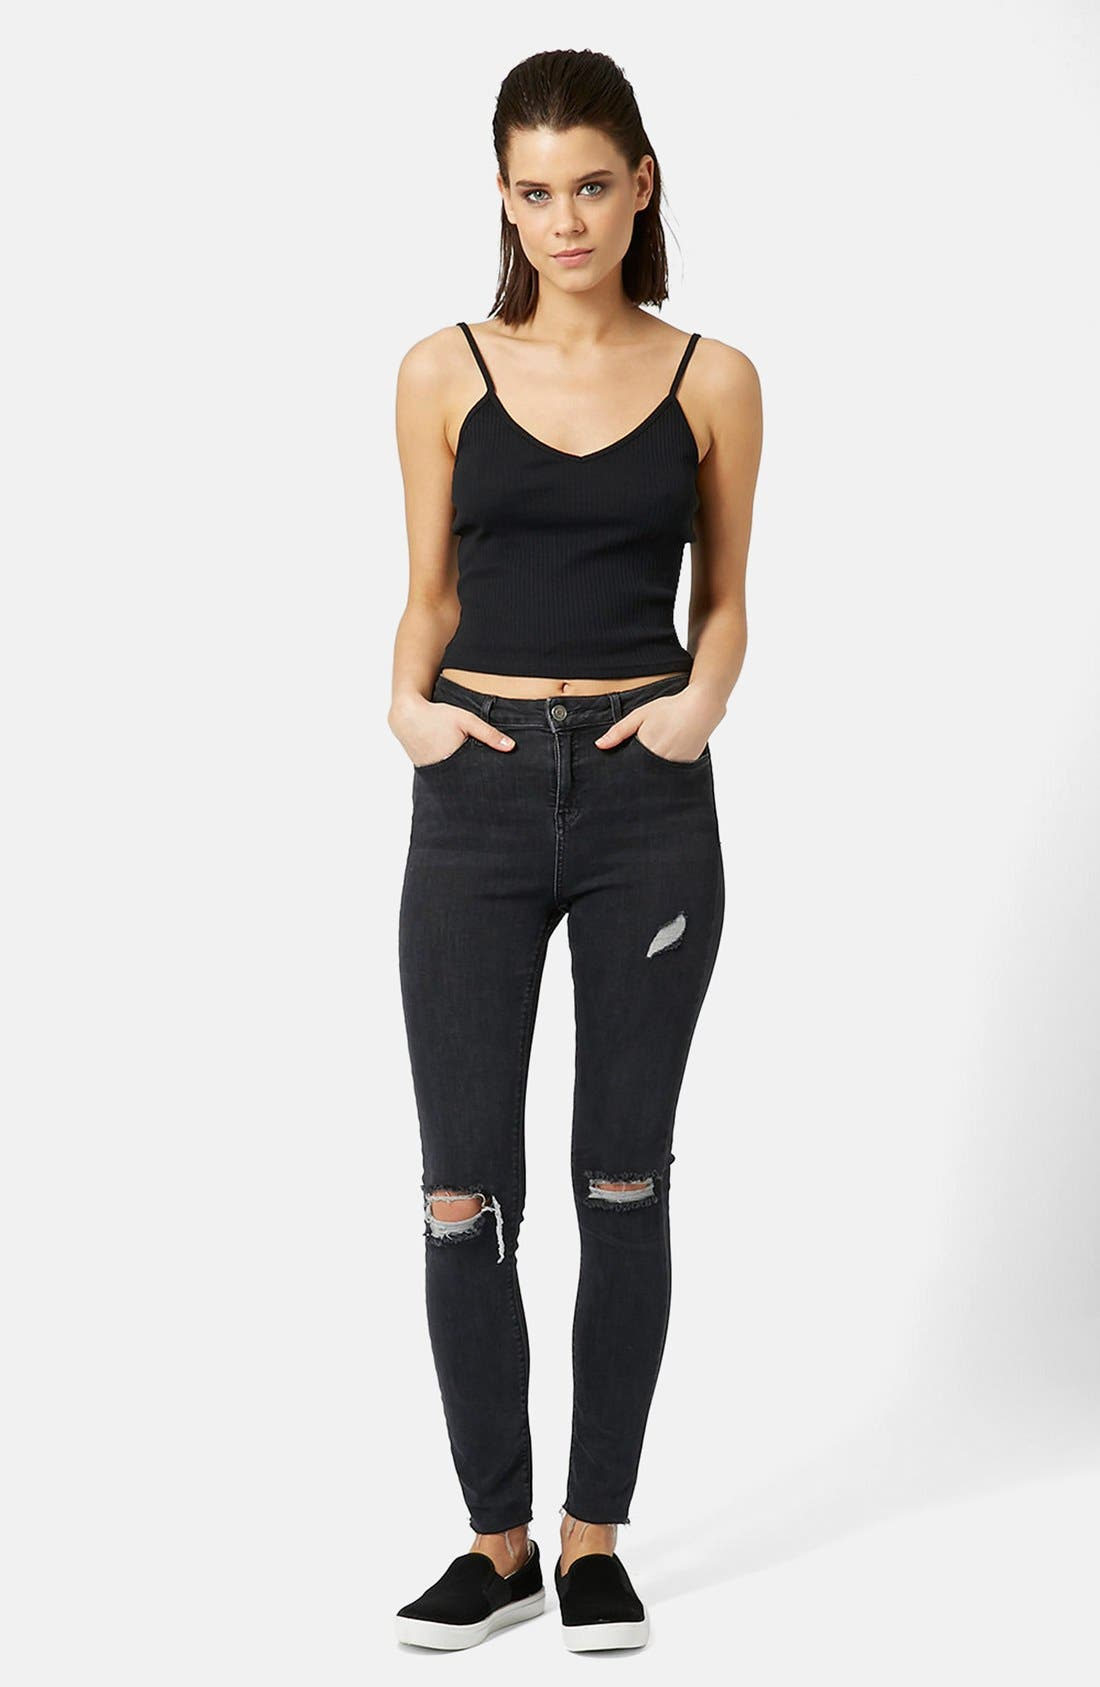 TOPSHOP, Ribbed Crop Camisole, Alternate thumbnail 5, color, 001